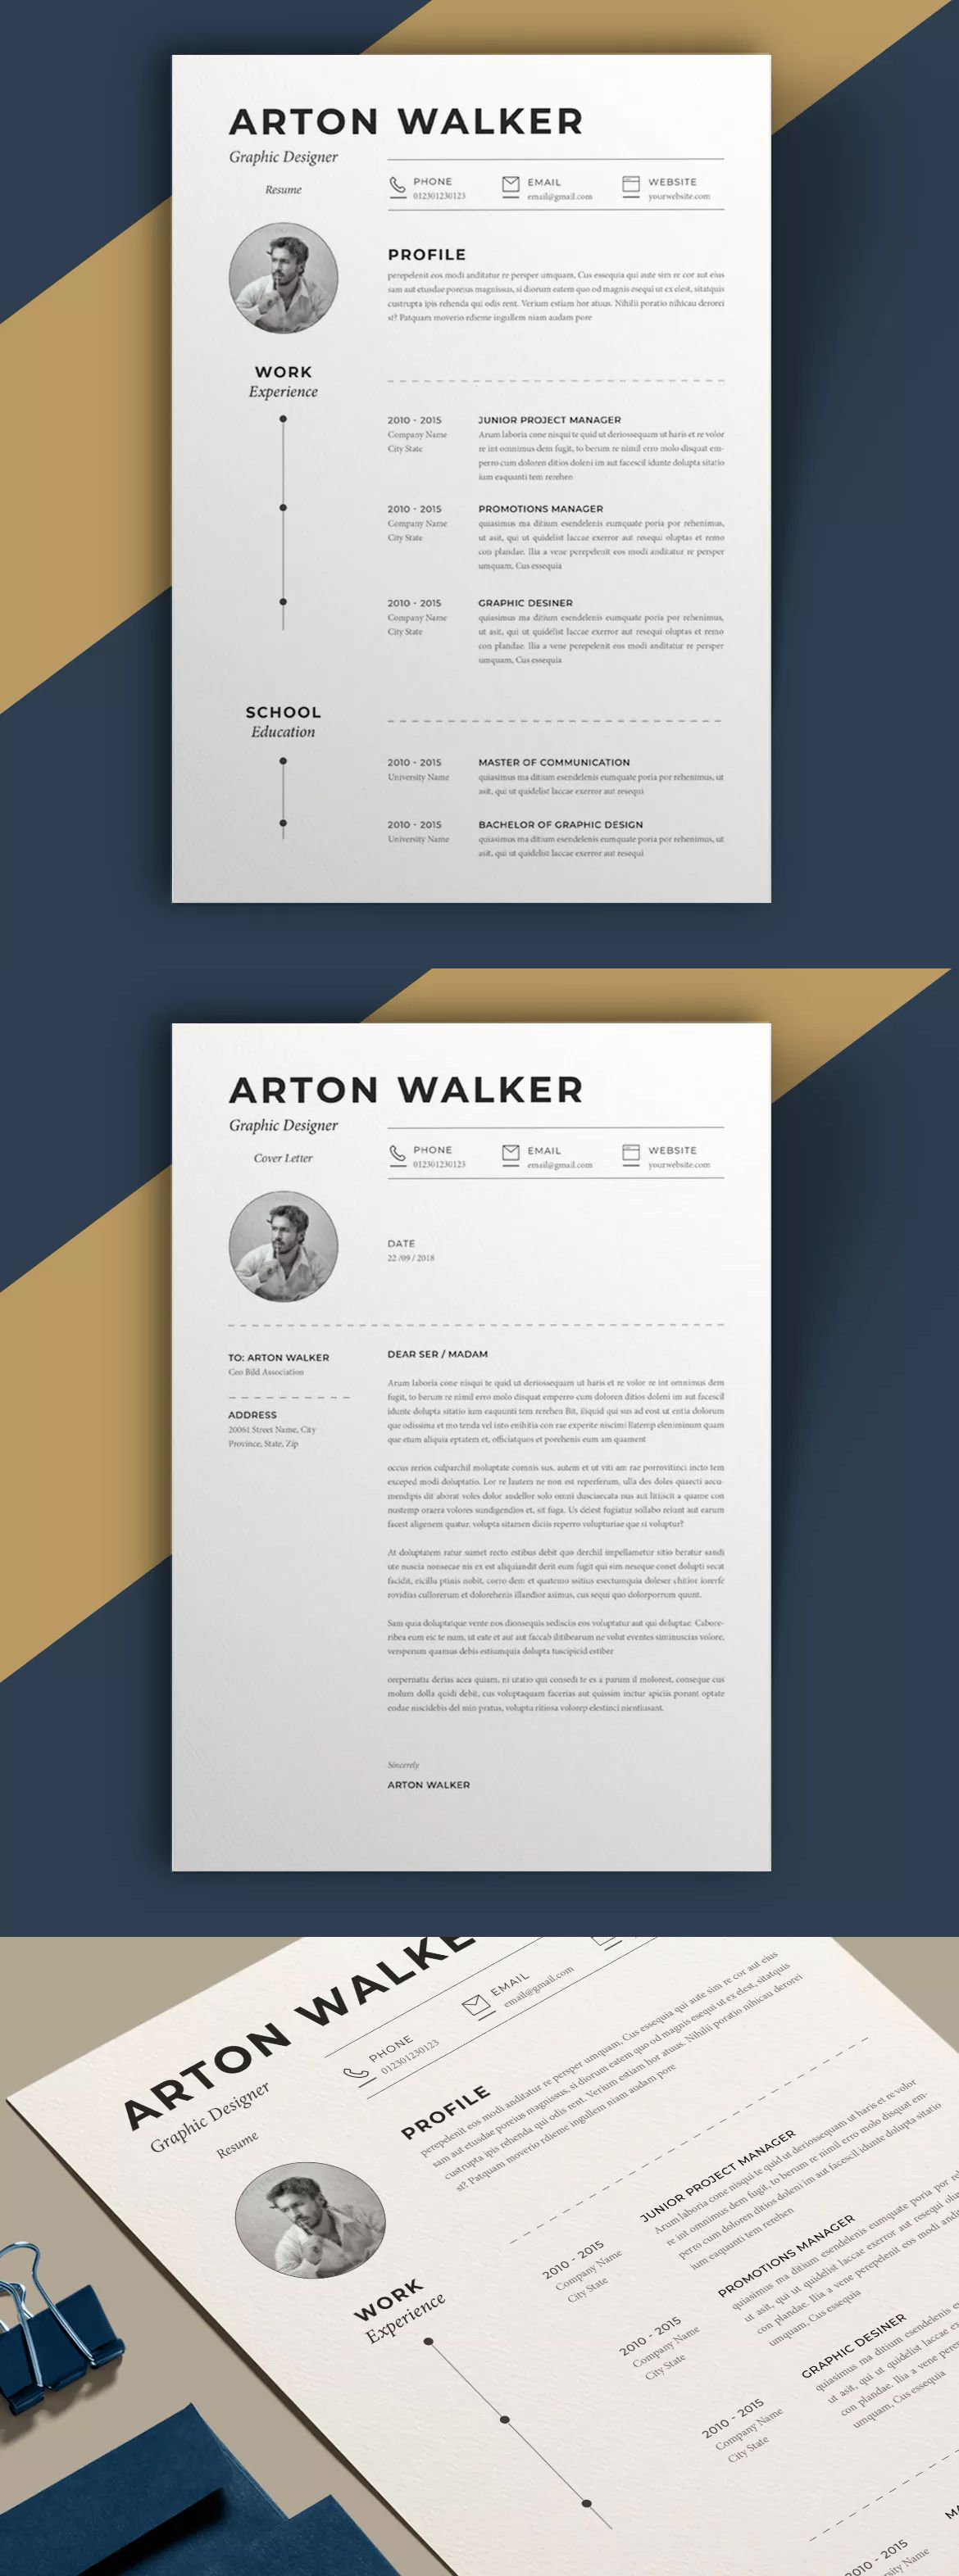 Resume Airton By Sz81 On Envato Elements Cv Design Template Cover Letter For Resume Resume